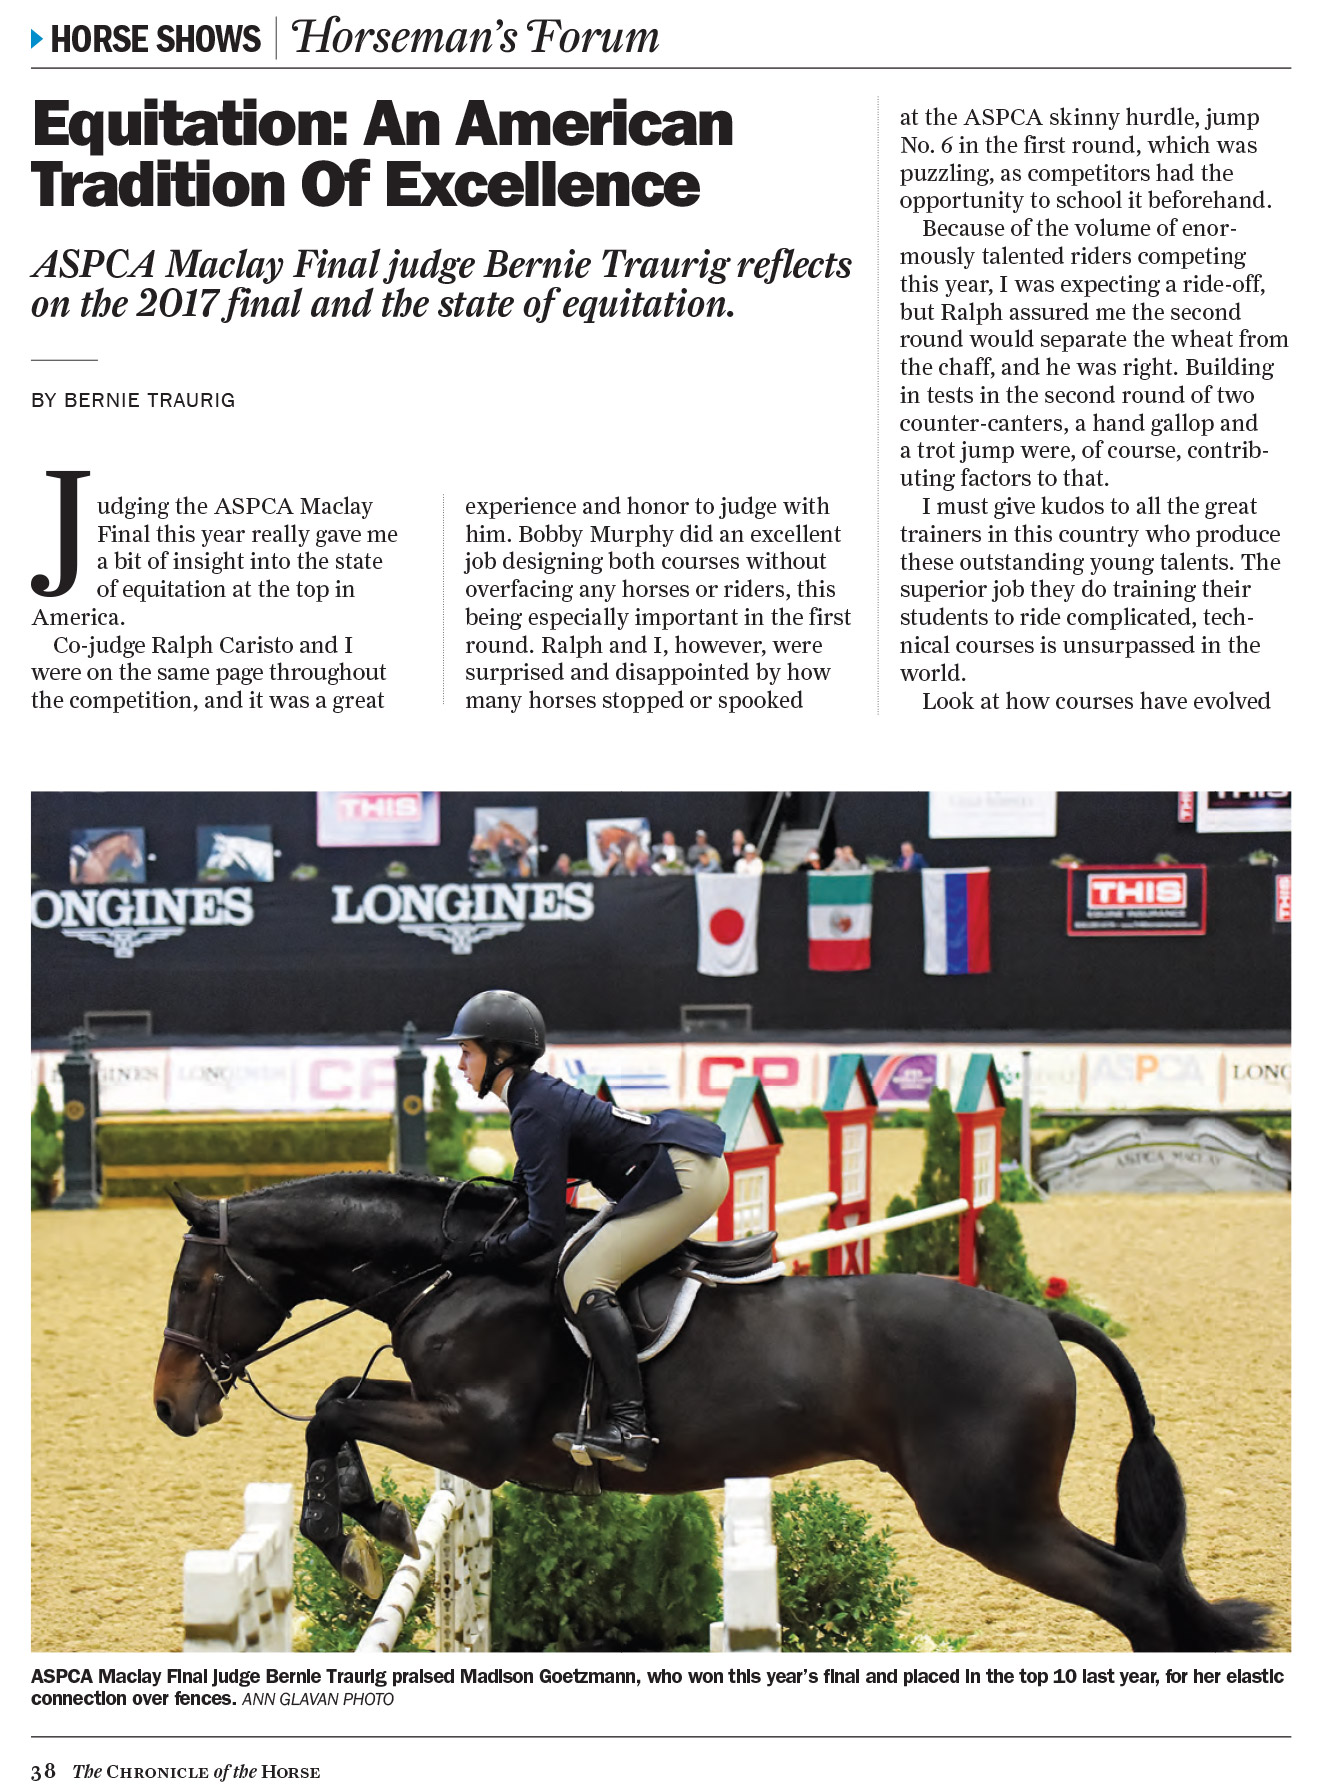 The Chronicle of the Horse - Equitation Article by Bernie Traurig